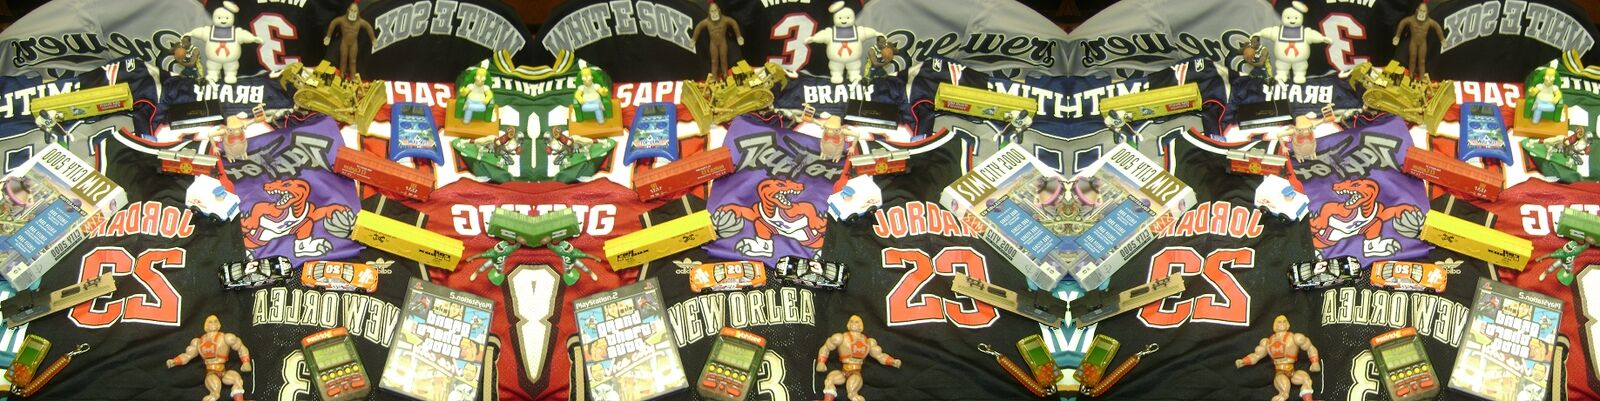 D-Lee's Collectibles and More